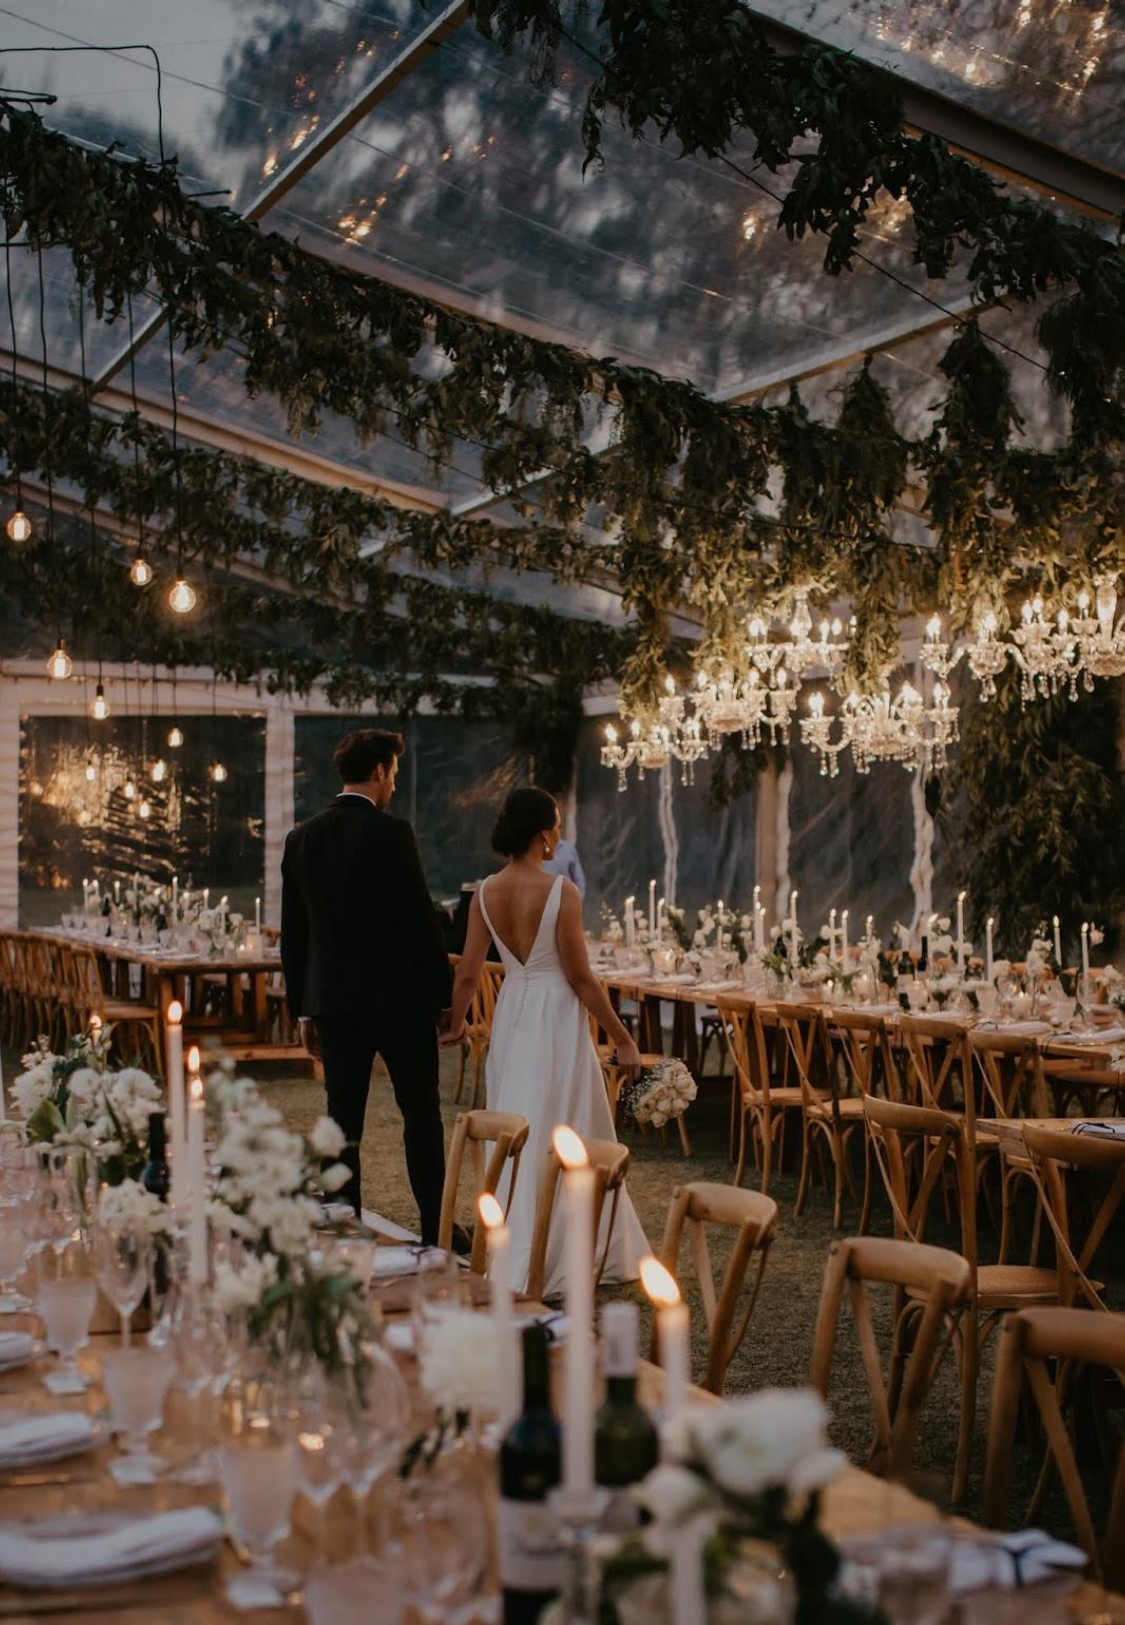 Wedding & Events_page-0002